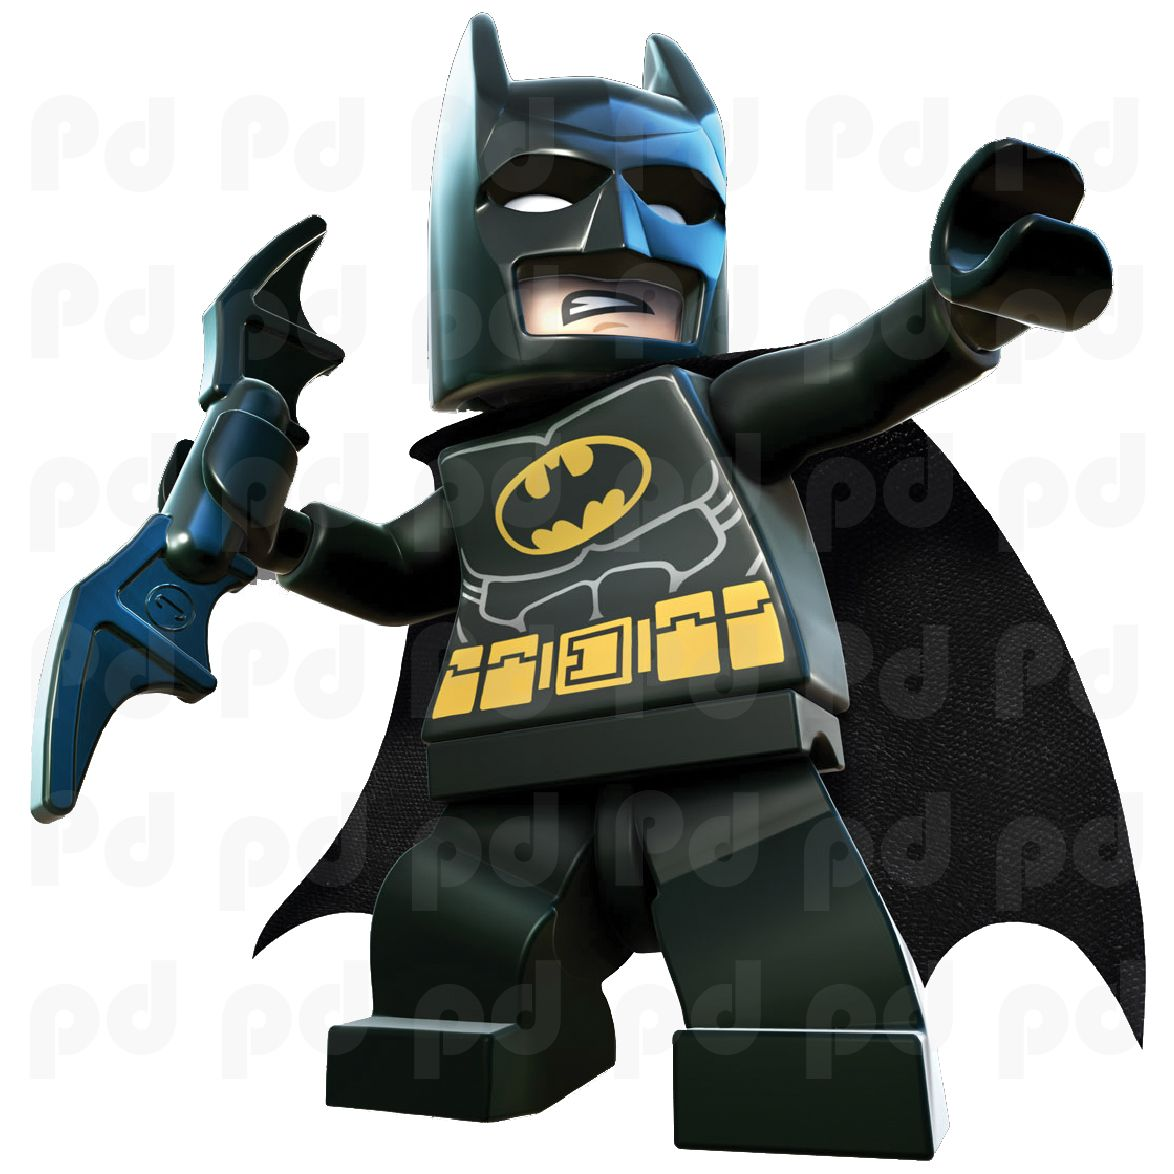 Lego Batman Wall Decal Superhero Wall Design The Dark Knight - Lego superhero wall decals